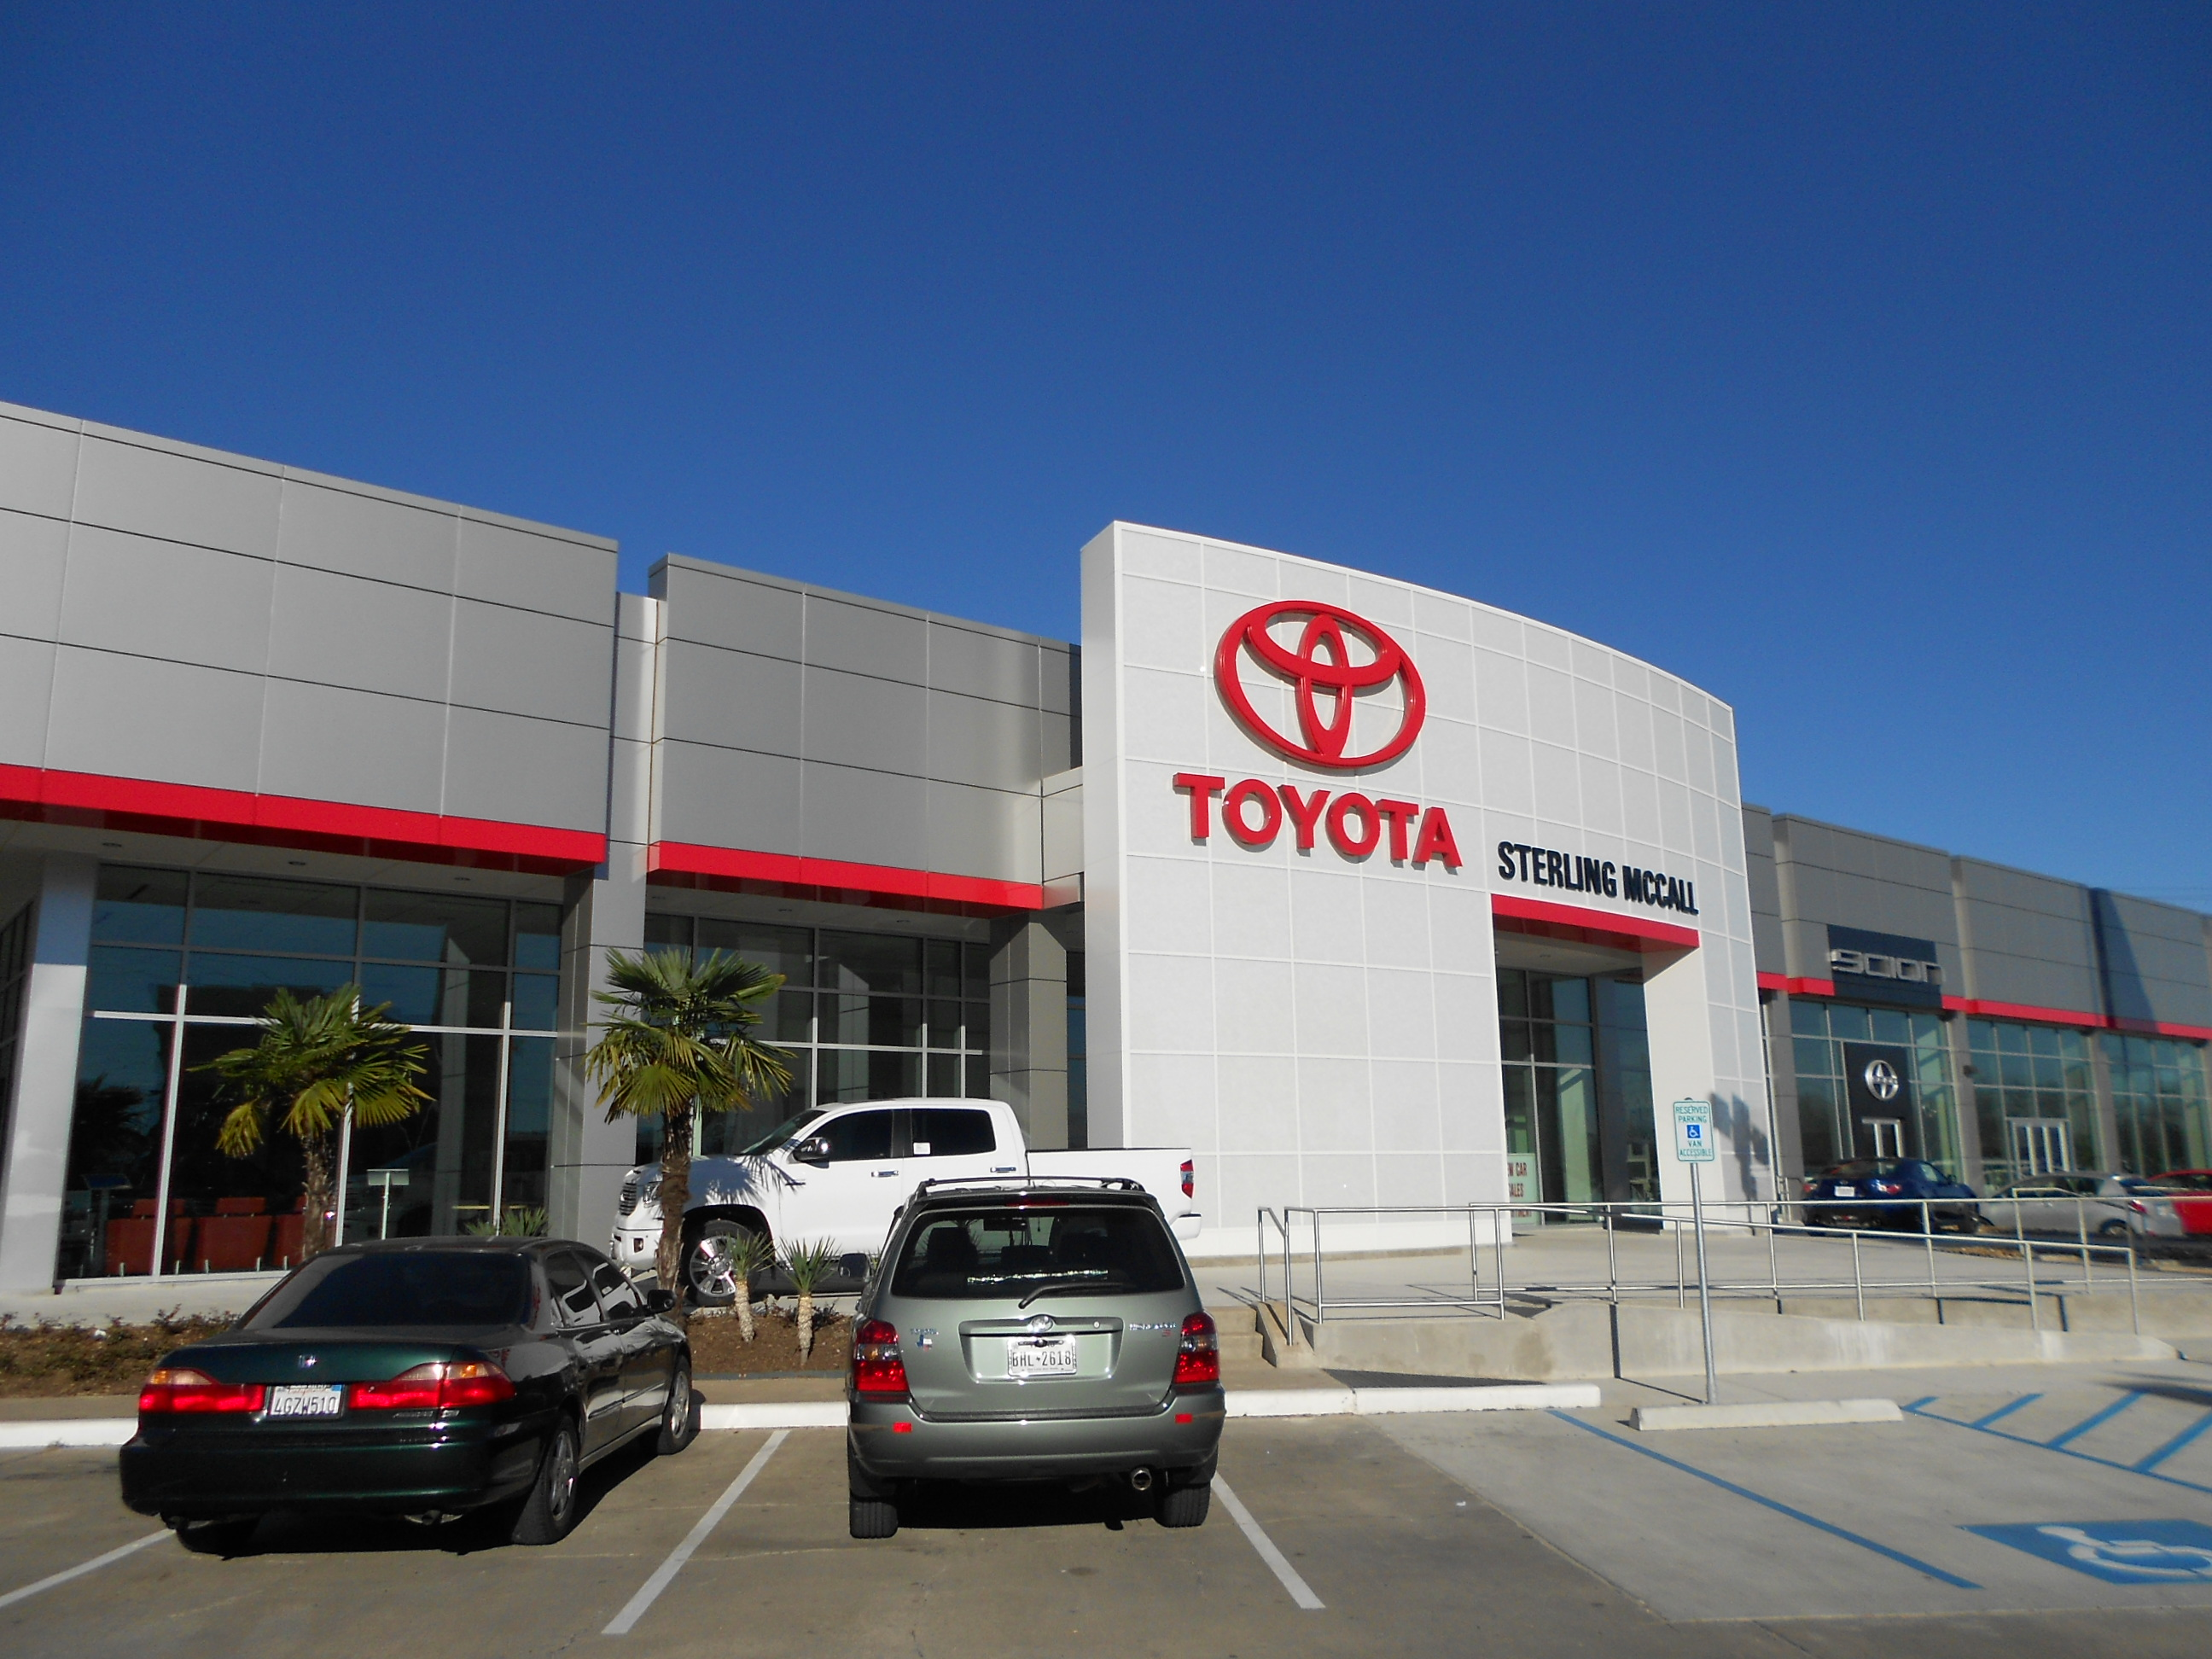 Sterling Mccall Toyota 9400 Southwest Fwy >> Sterling Mccall Toyota 9400 Southwest Freeway Houston Tx